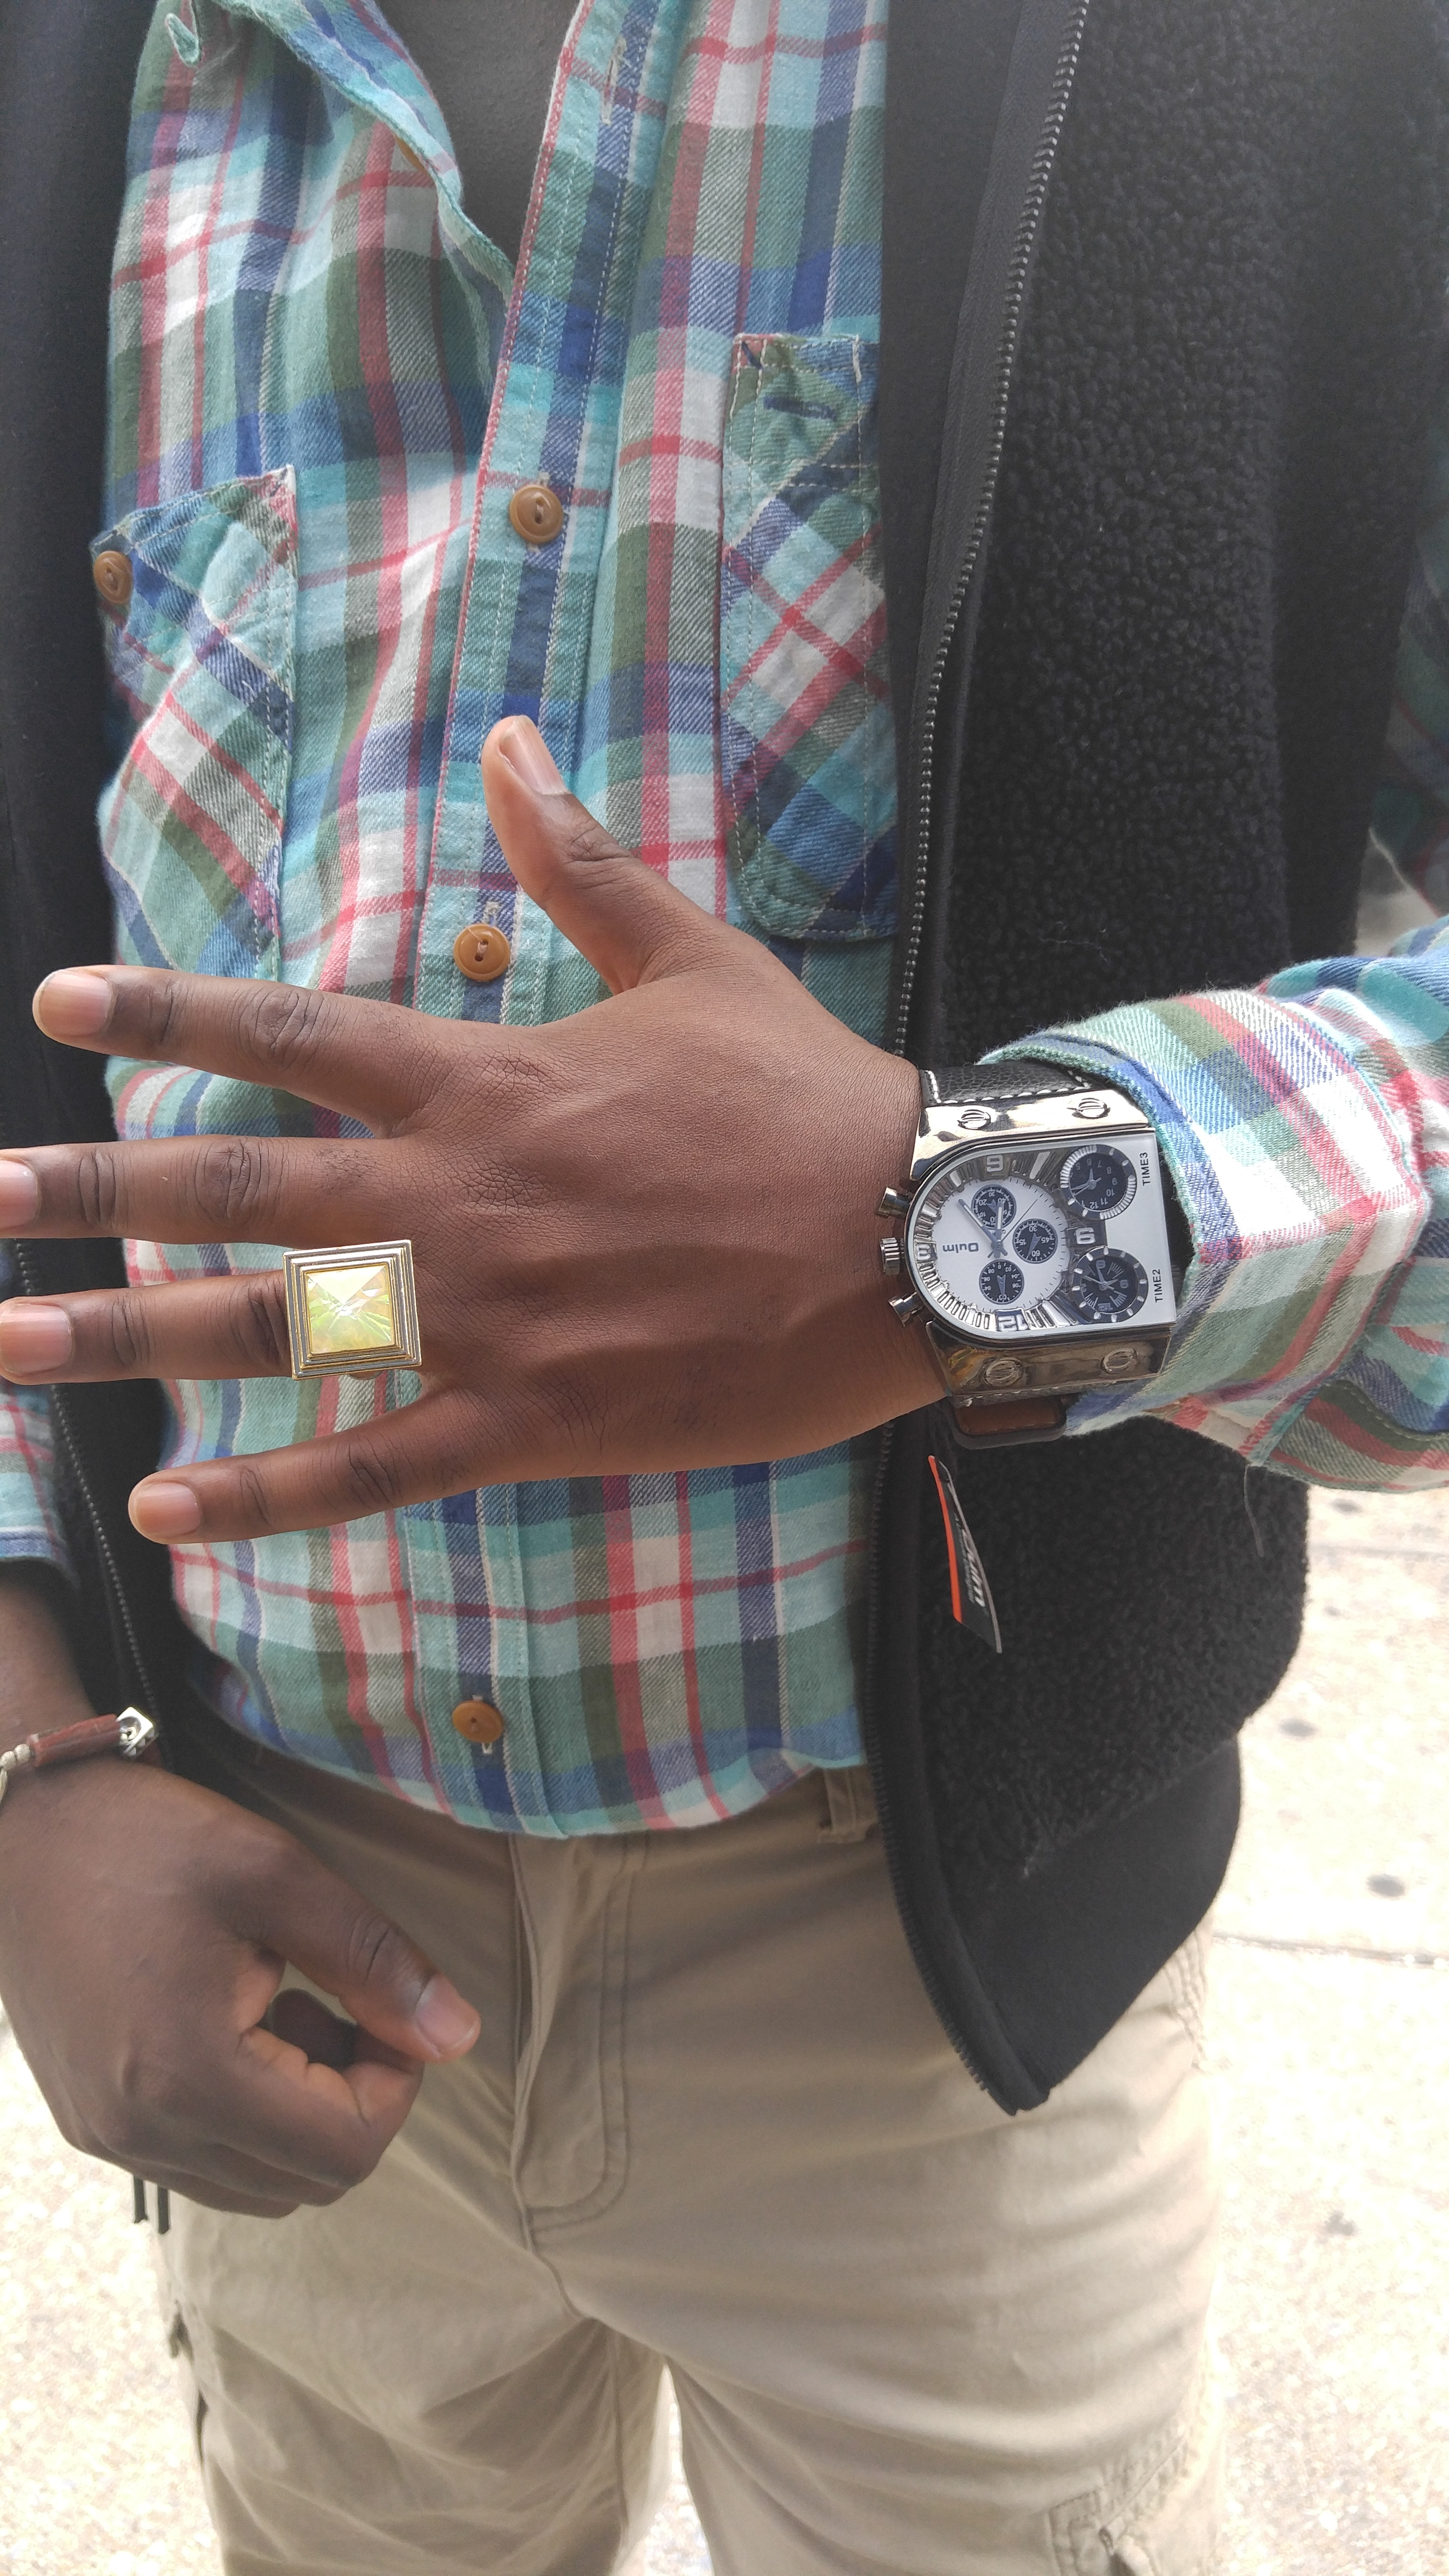 Ring designed by Nikus and watch distributed by Nikus